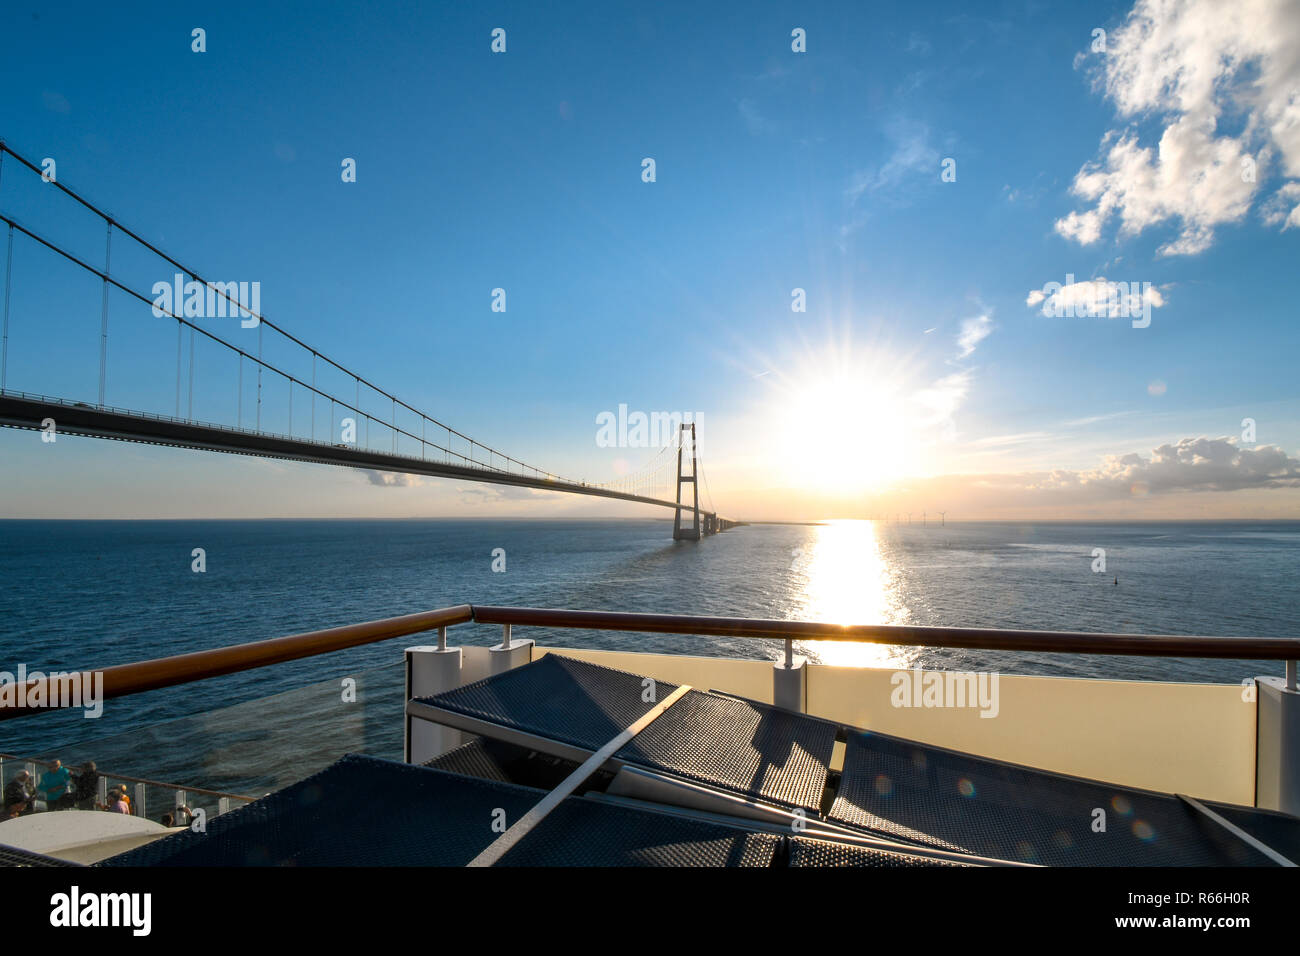 View of the setting sun over the Öresund Bridge which spans the strait between Sweden and Denmark from a boat on the Baltic Sea. Stock Photo